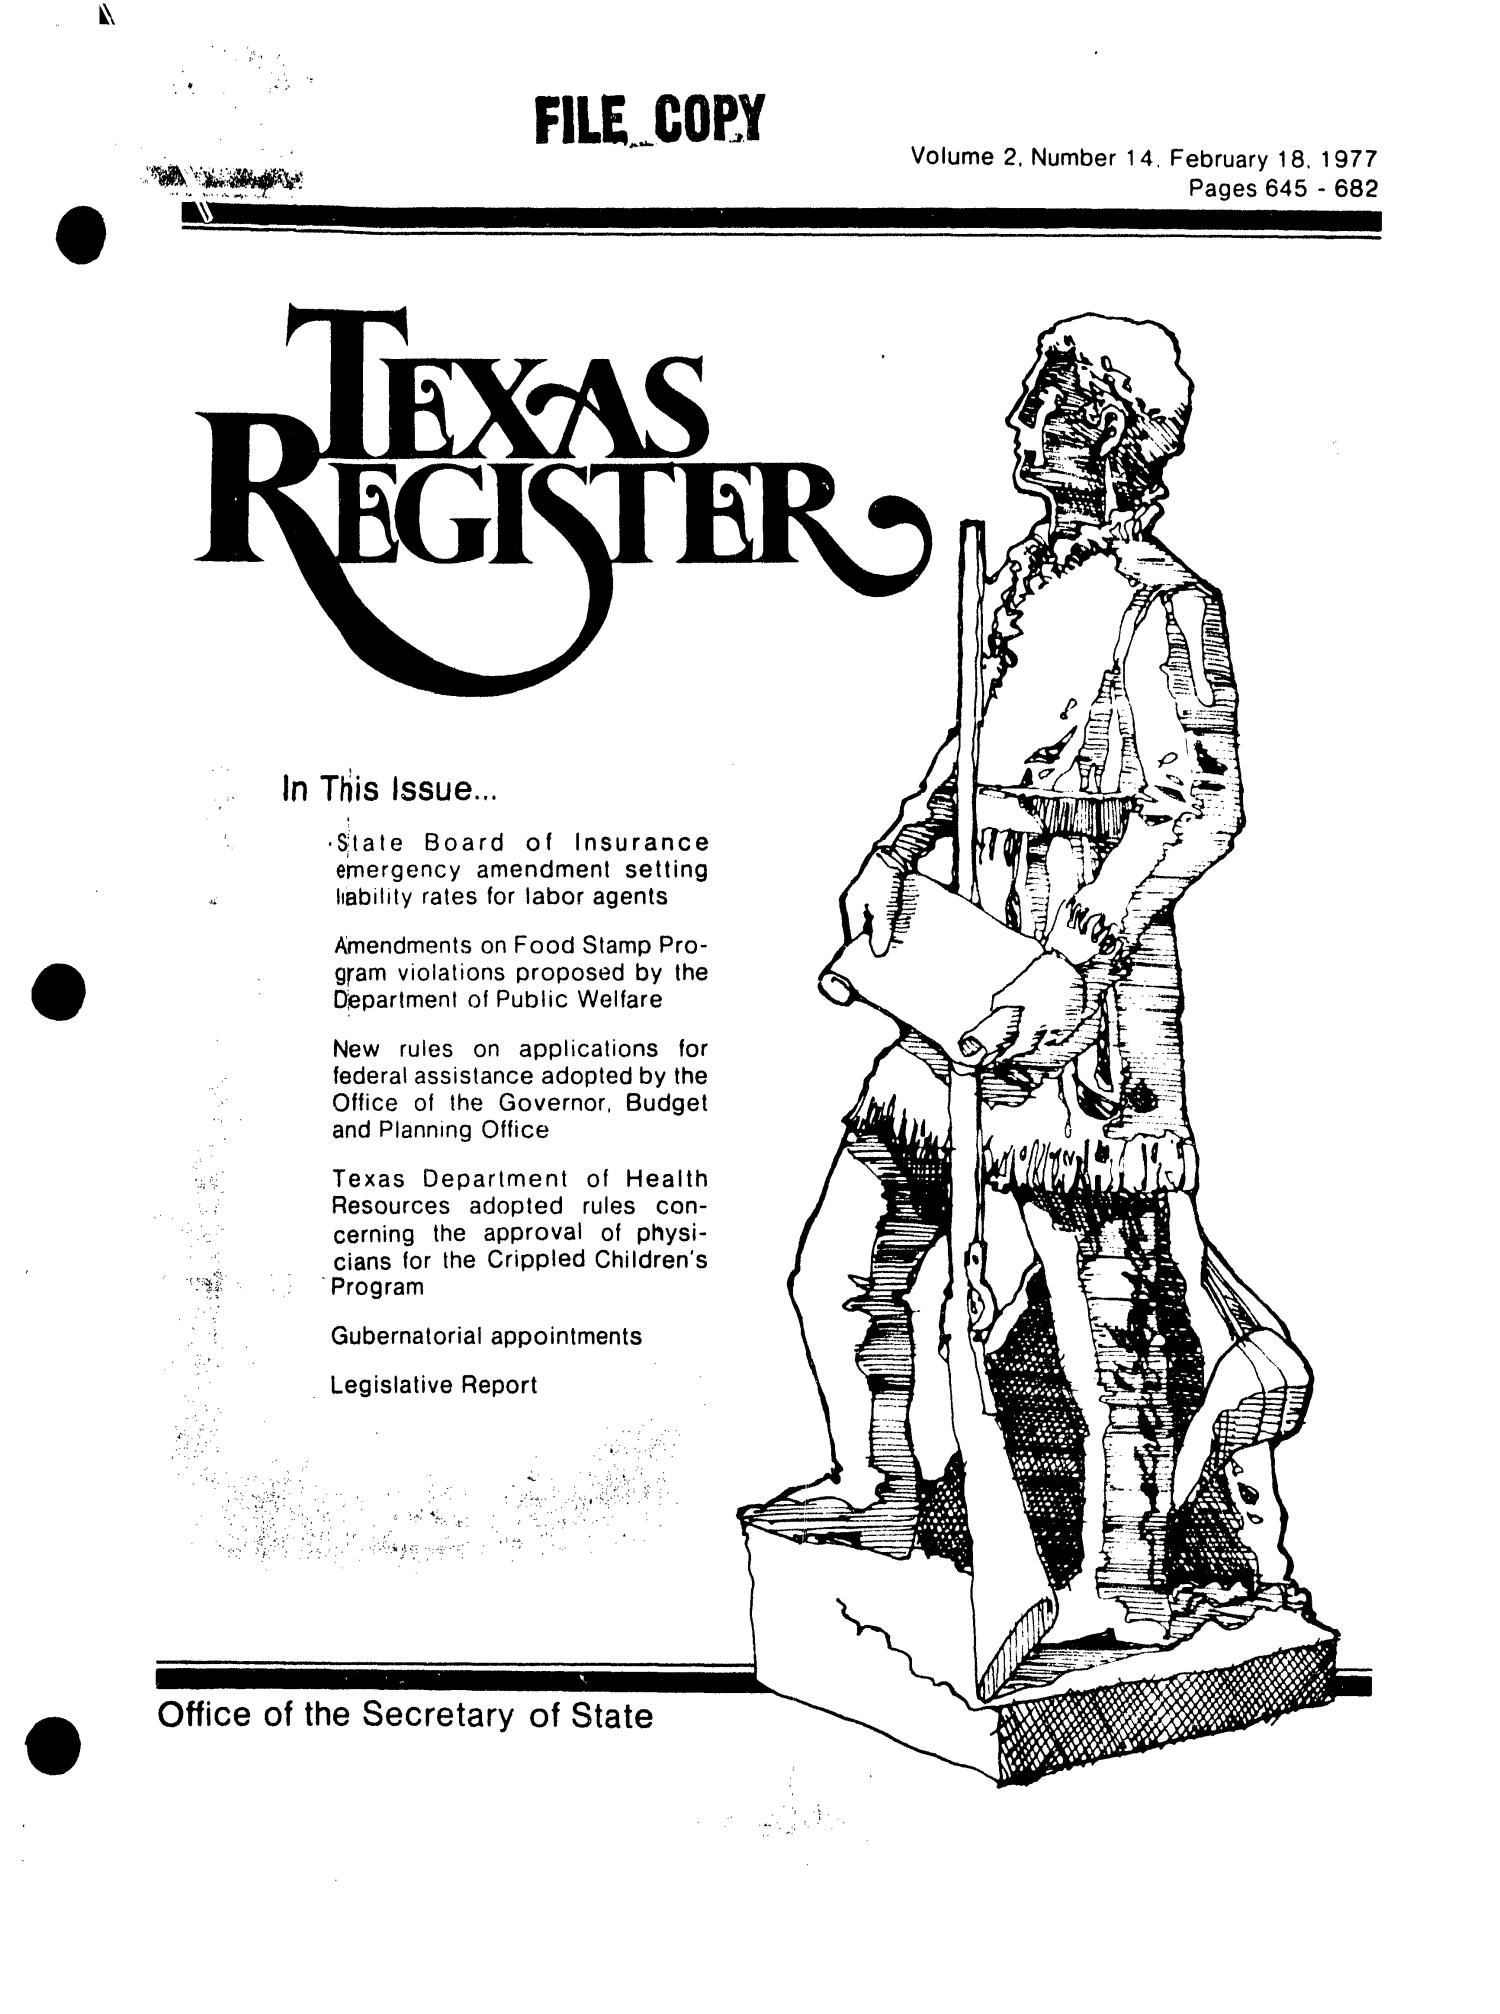 Texas Register, Volume 2, Number 14, Pages 645-682, February 18, 1977                                                                                                      Title Page